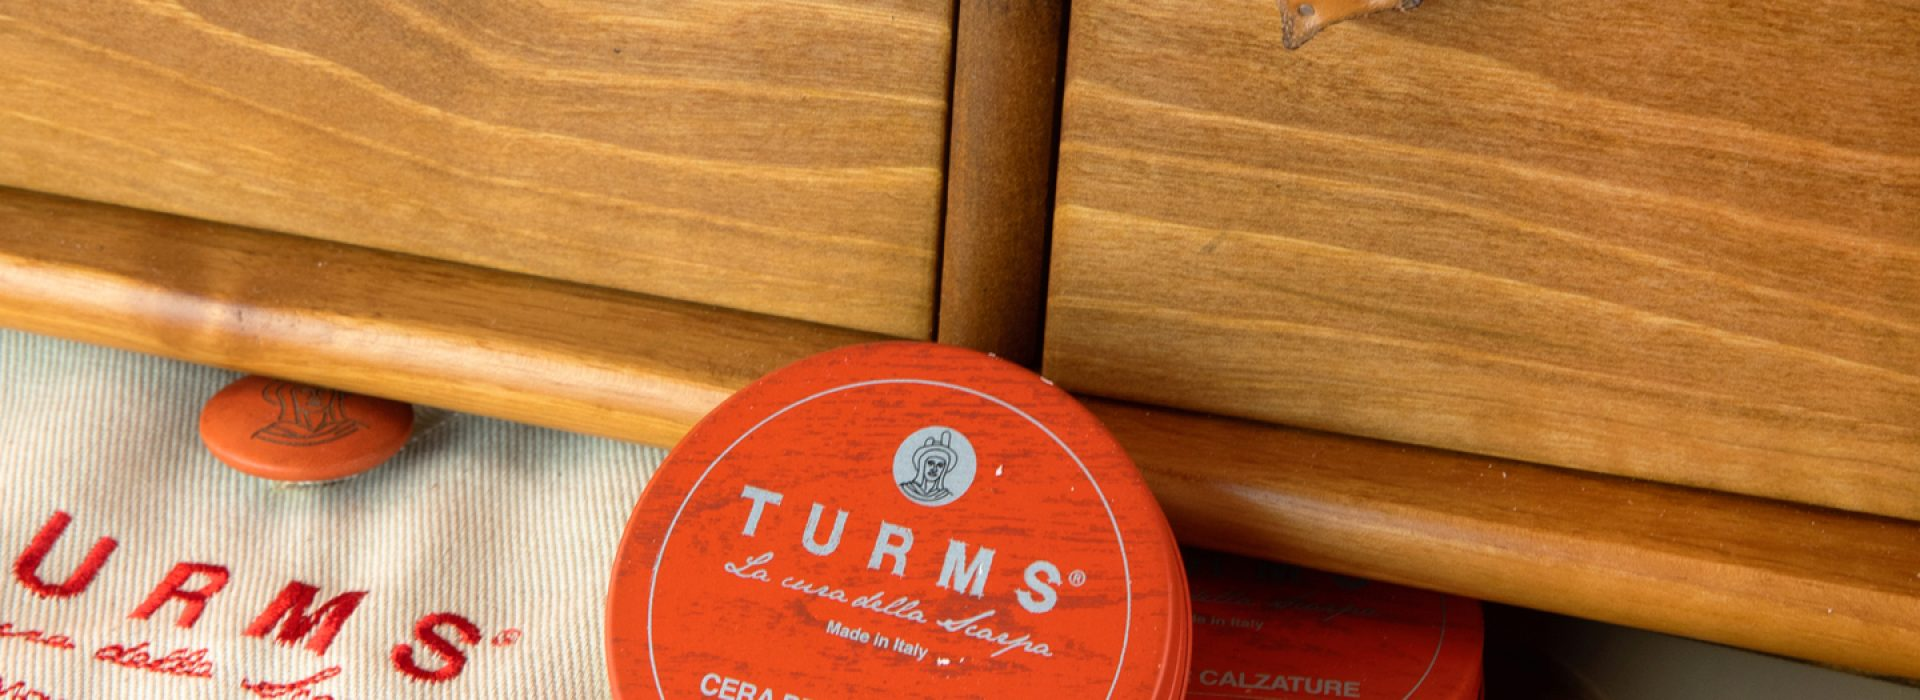 turms_complete shoe care kit in mobiletto __light brown__2